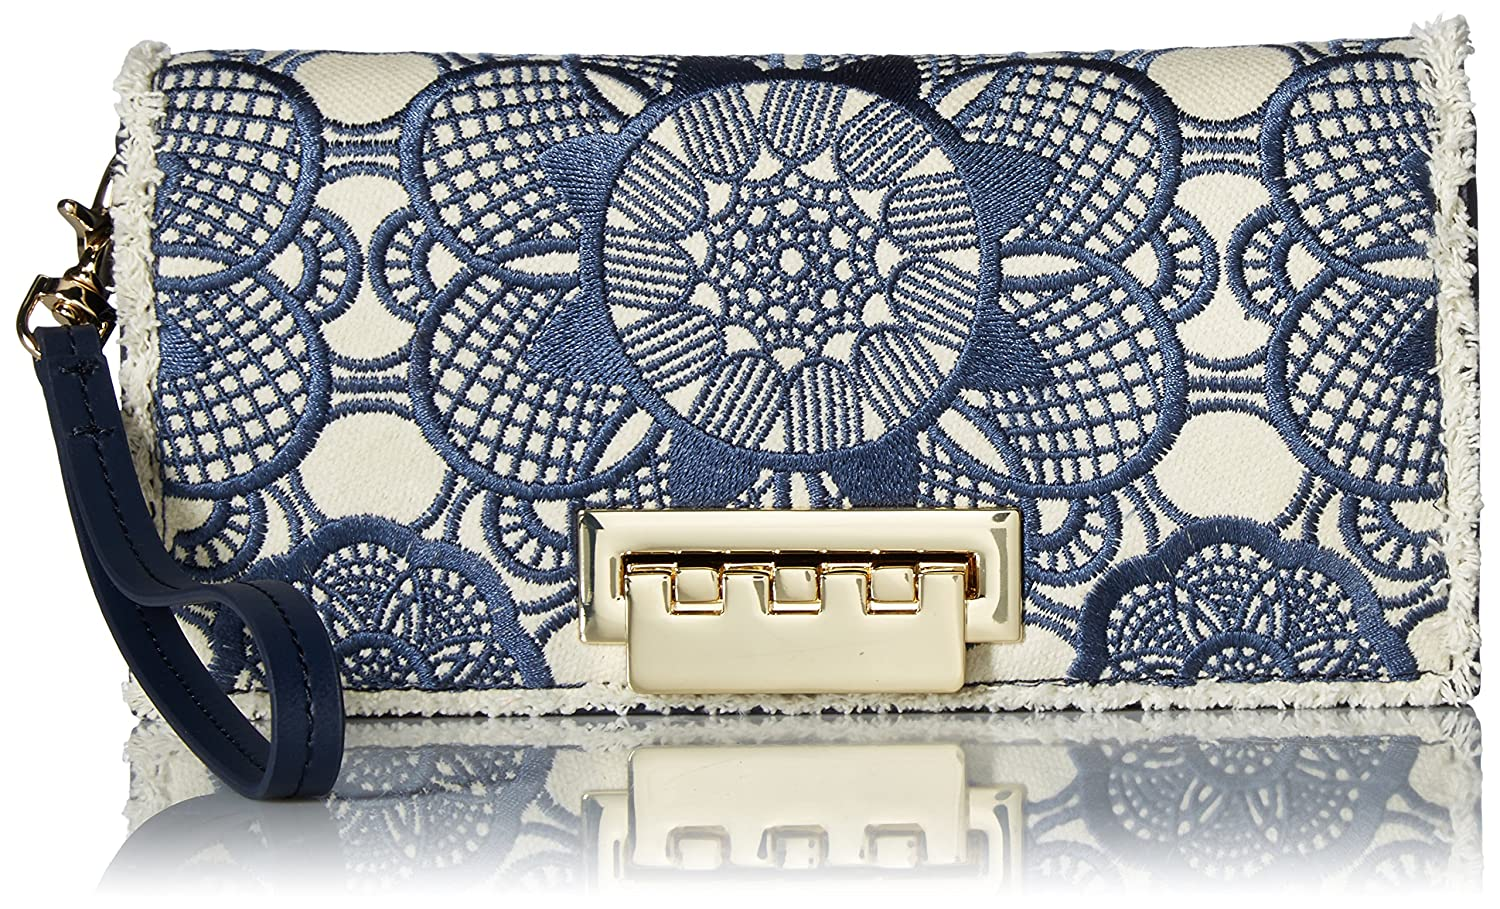 ZAC Zac Posen Earthette Wristlet, Embroider Tide ZP2061-401